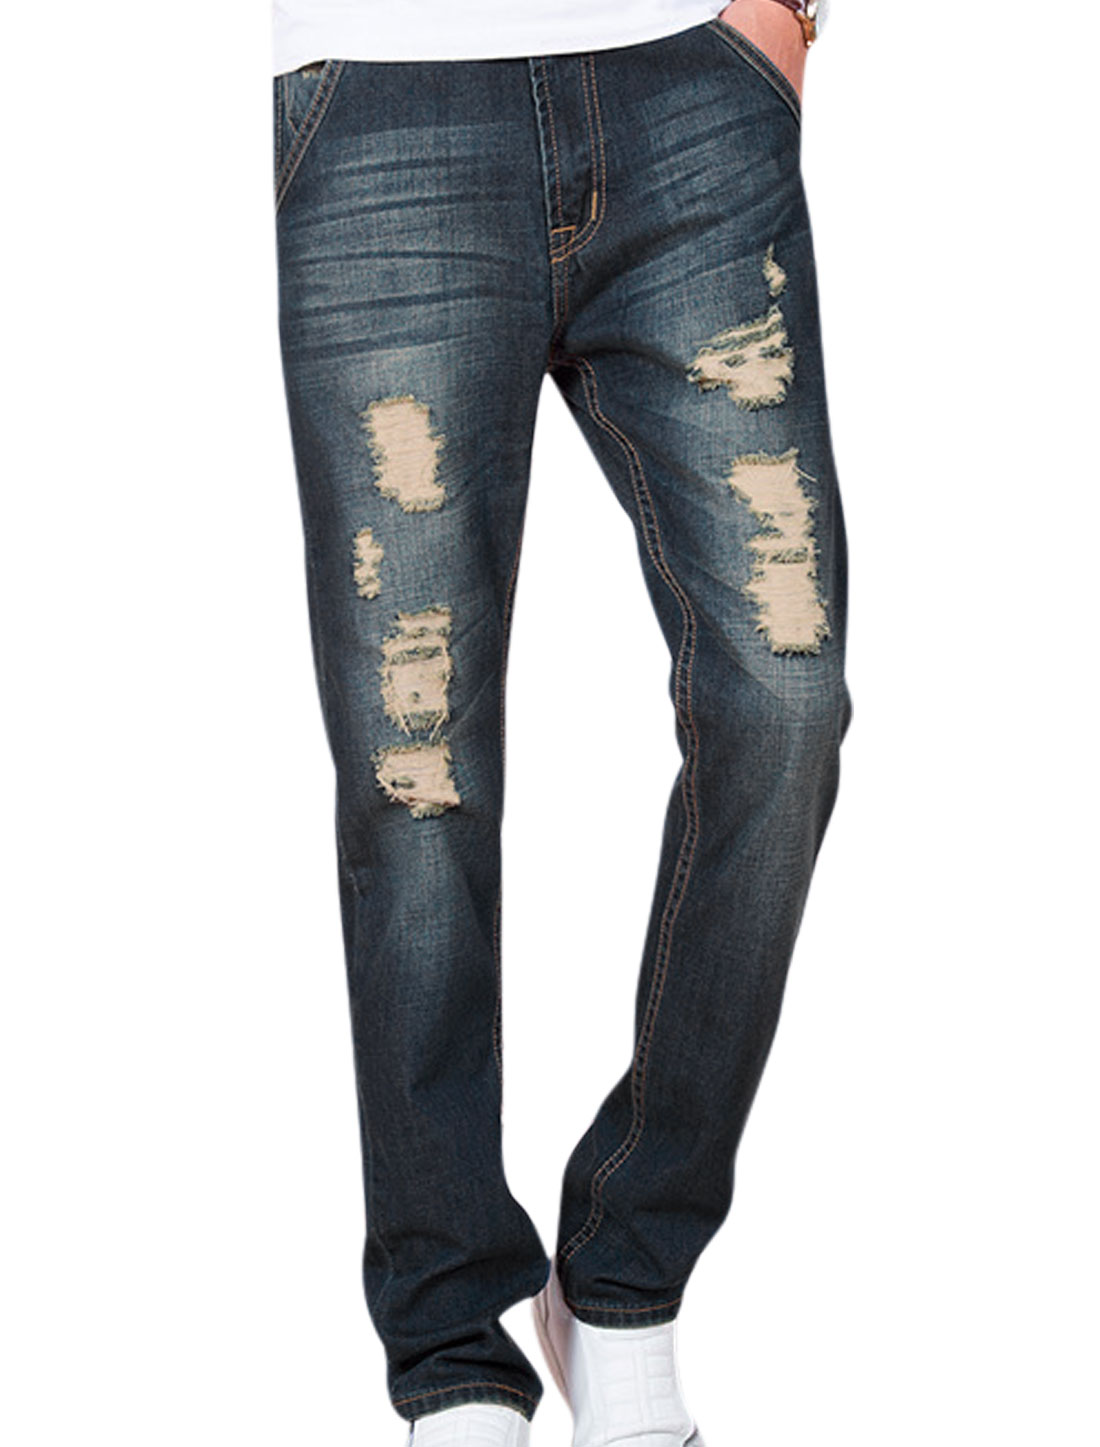 Mid Rise Destroyed Design Straight NEW Jeans for Men Navy Blue W32